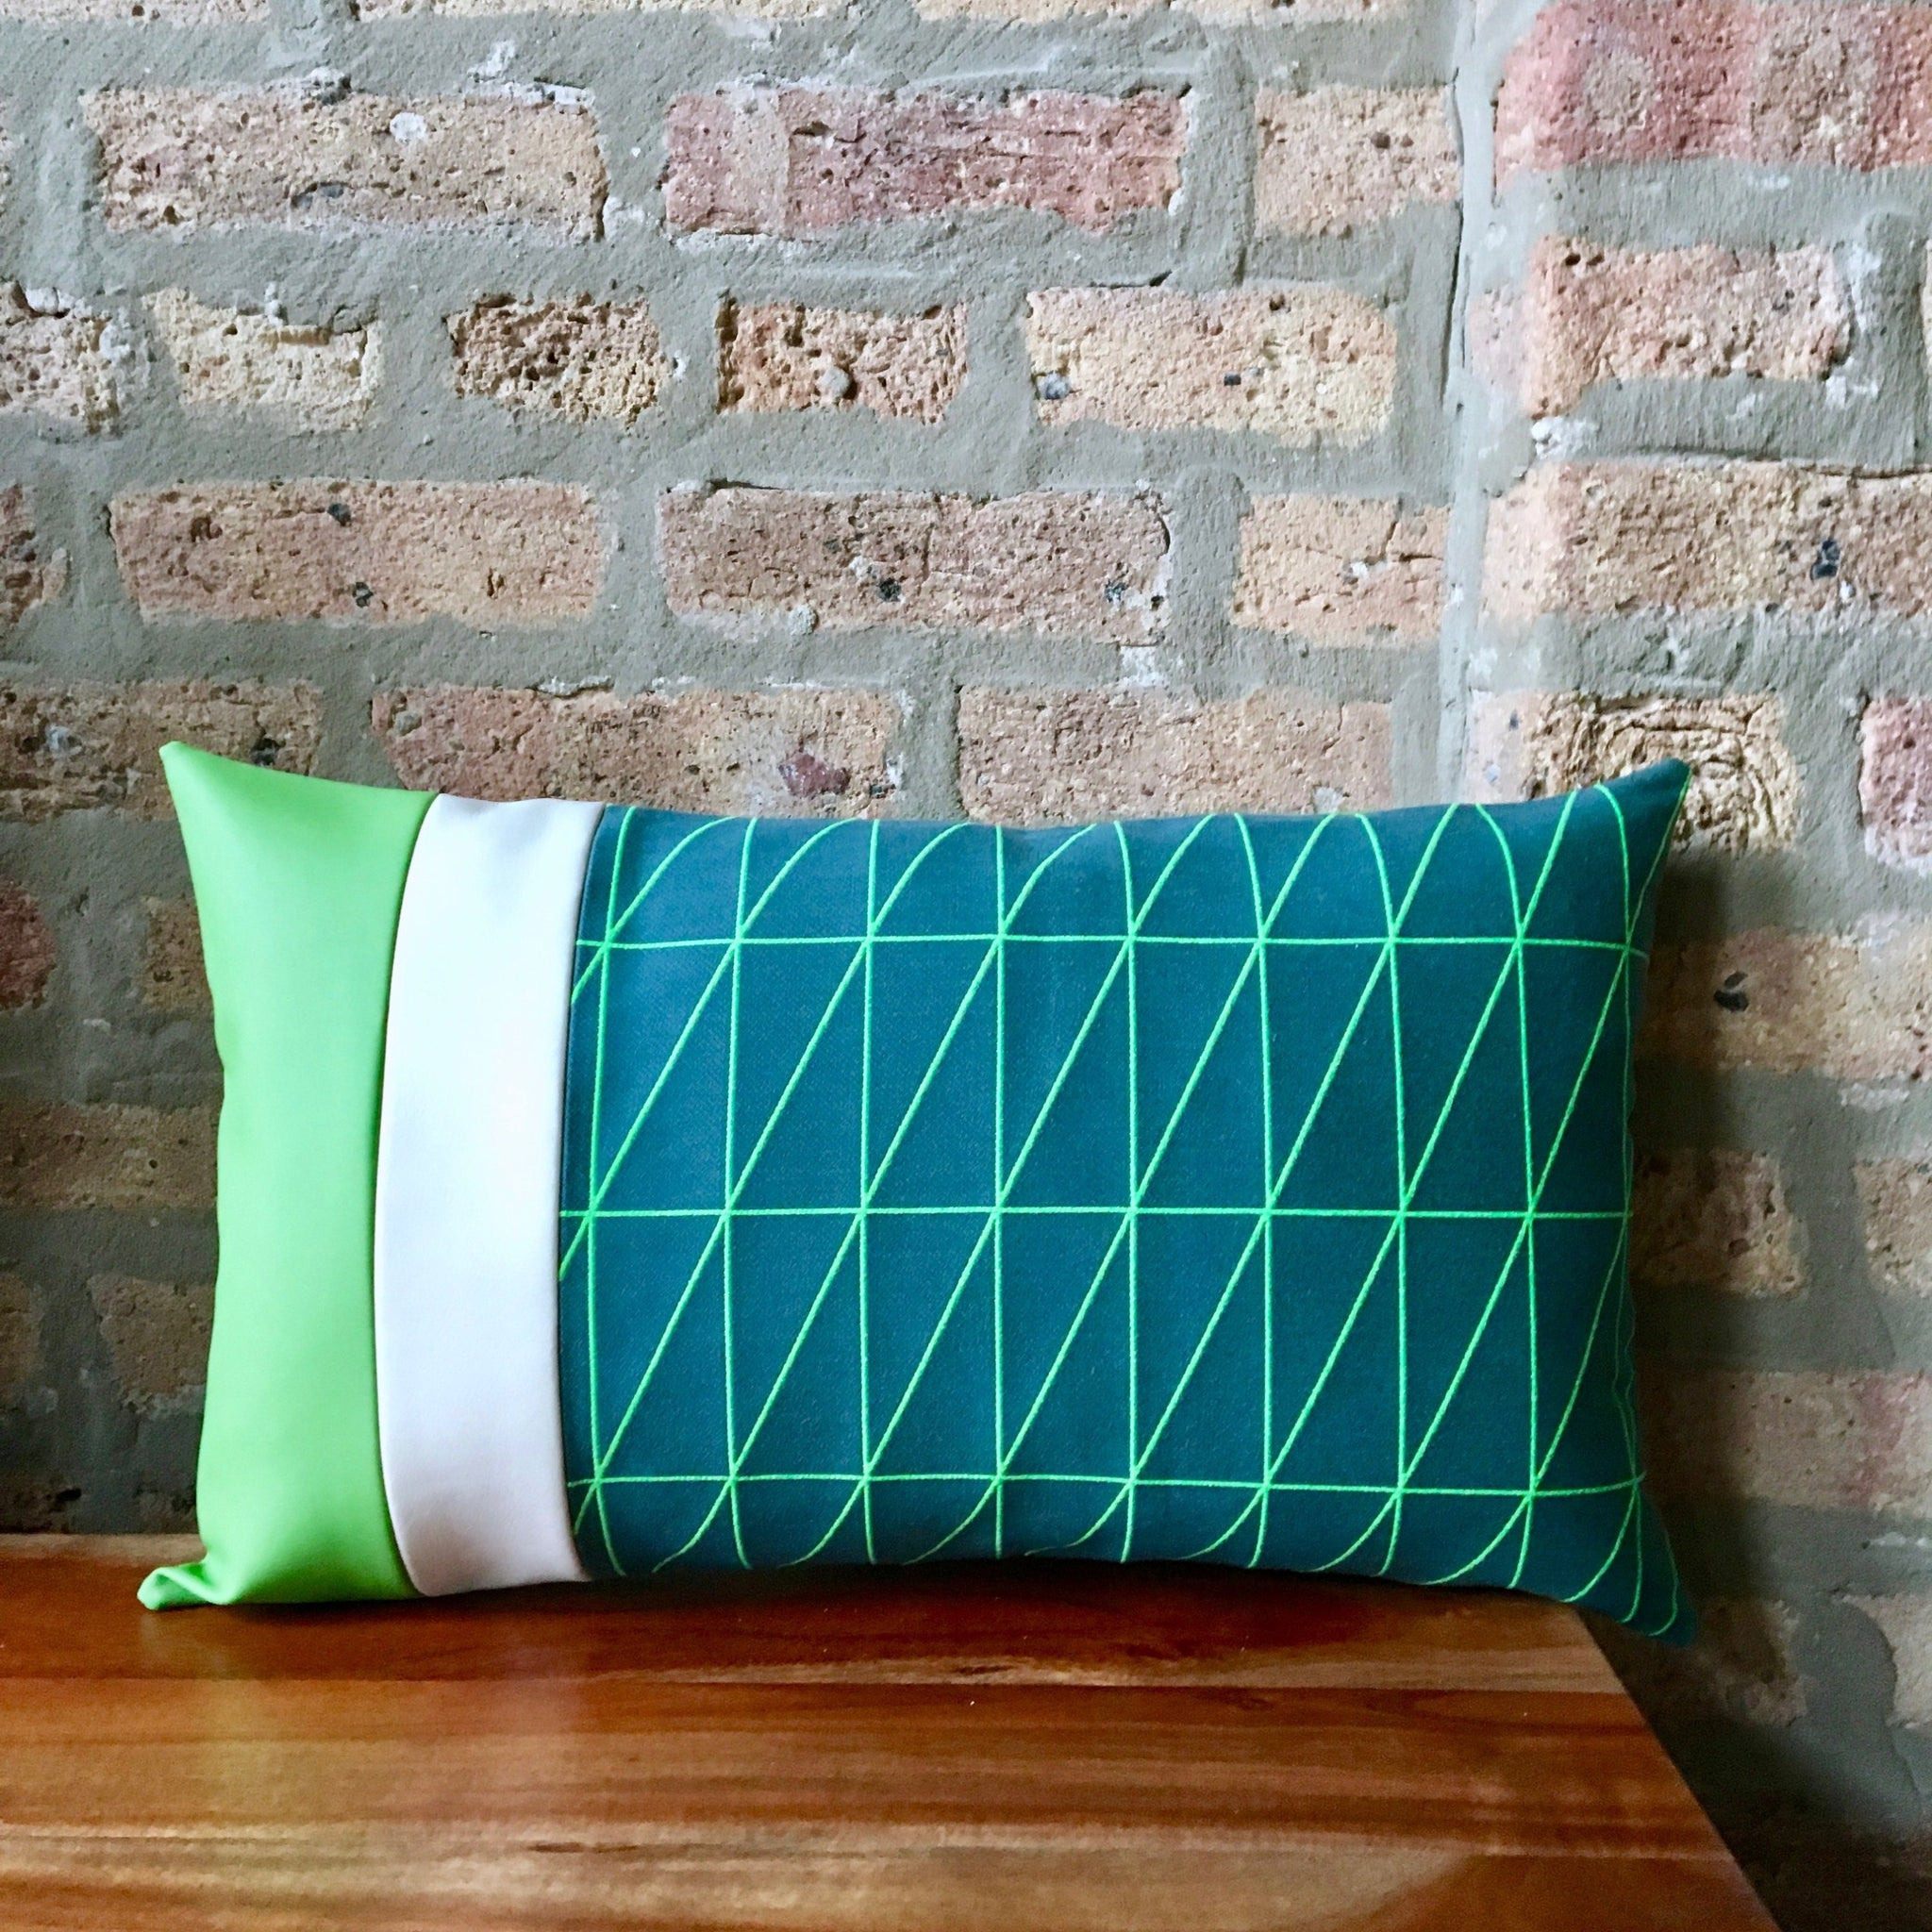 12x20 Bright Green And Blue Outdoor Striped Lumbar Pillow Covers Alta Textiles